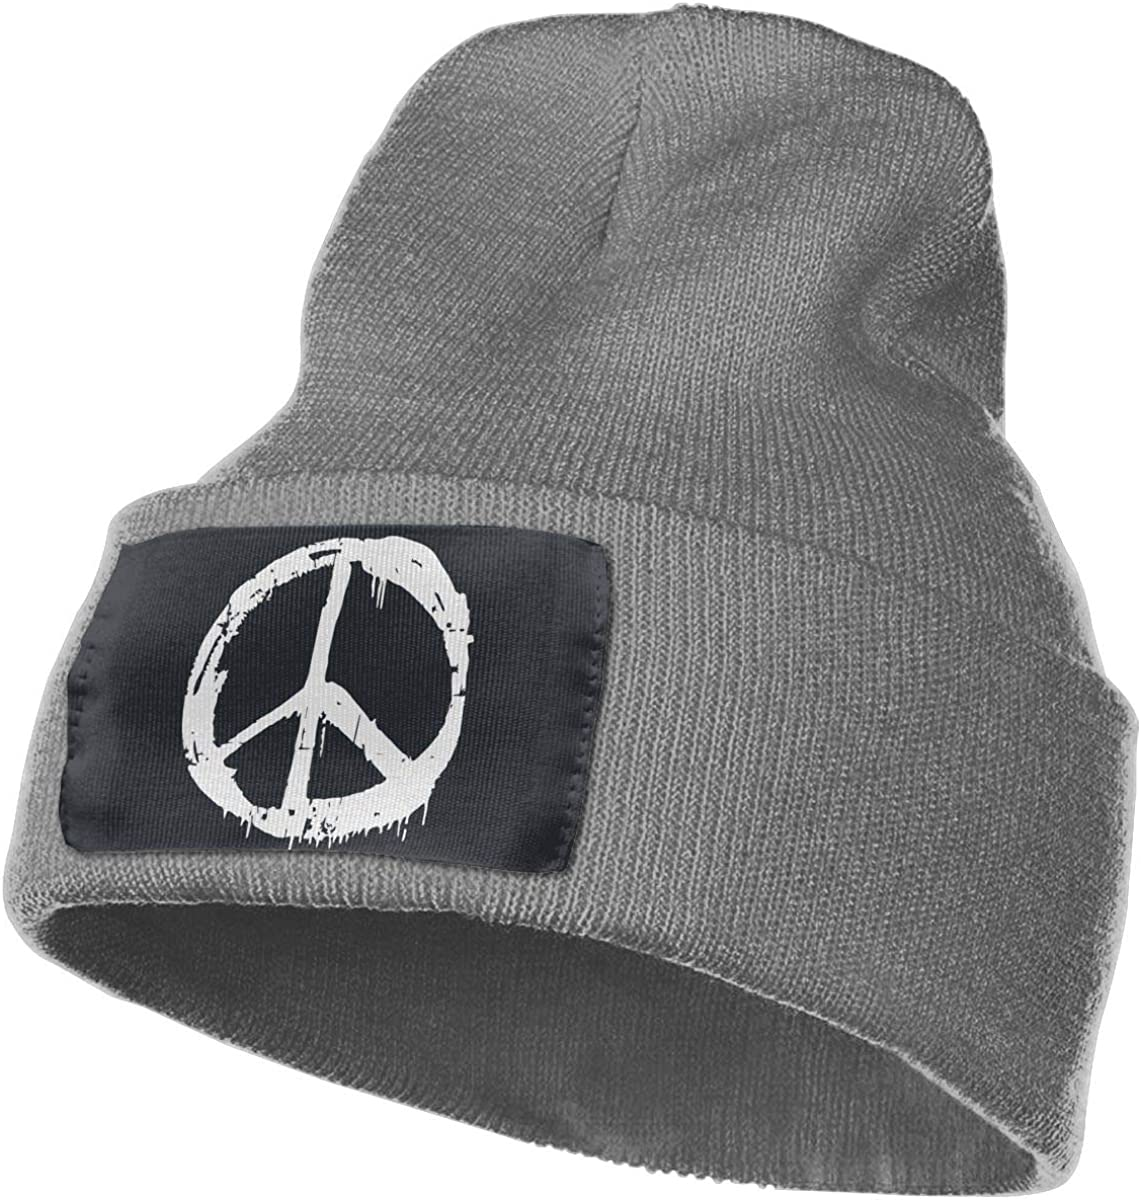 TAOMAP89 Peace Sign Men /& Women Skull Caps Winter Warm Stretchy Knit Beanie Hats